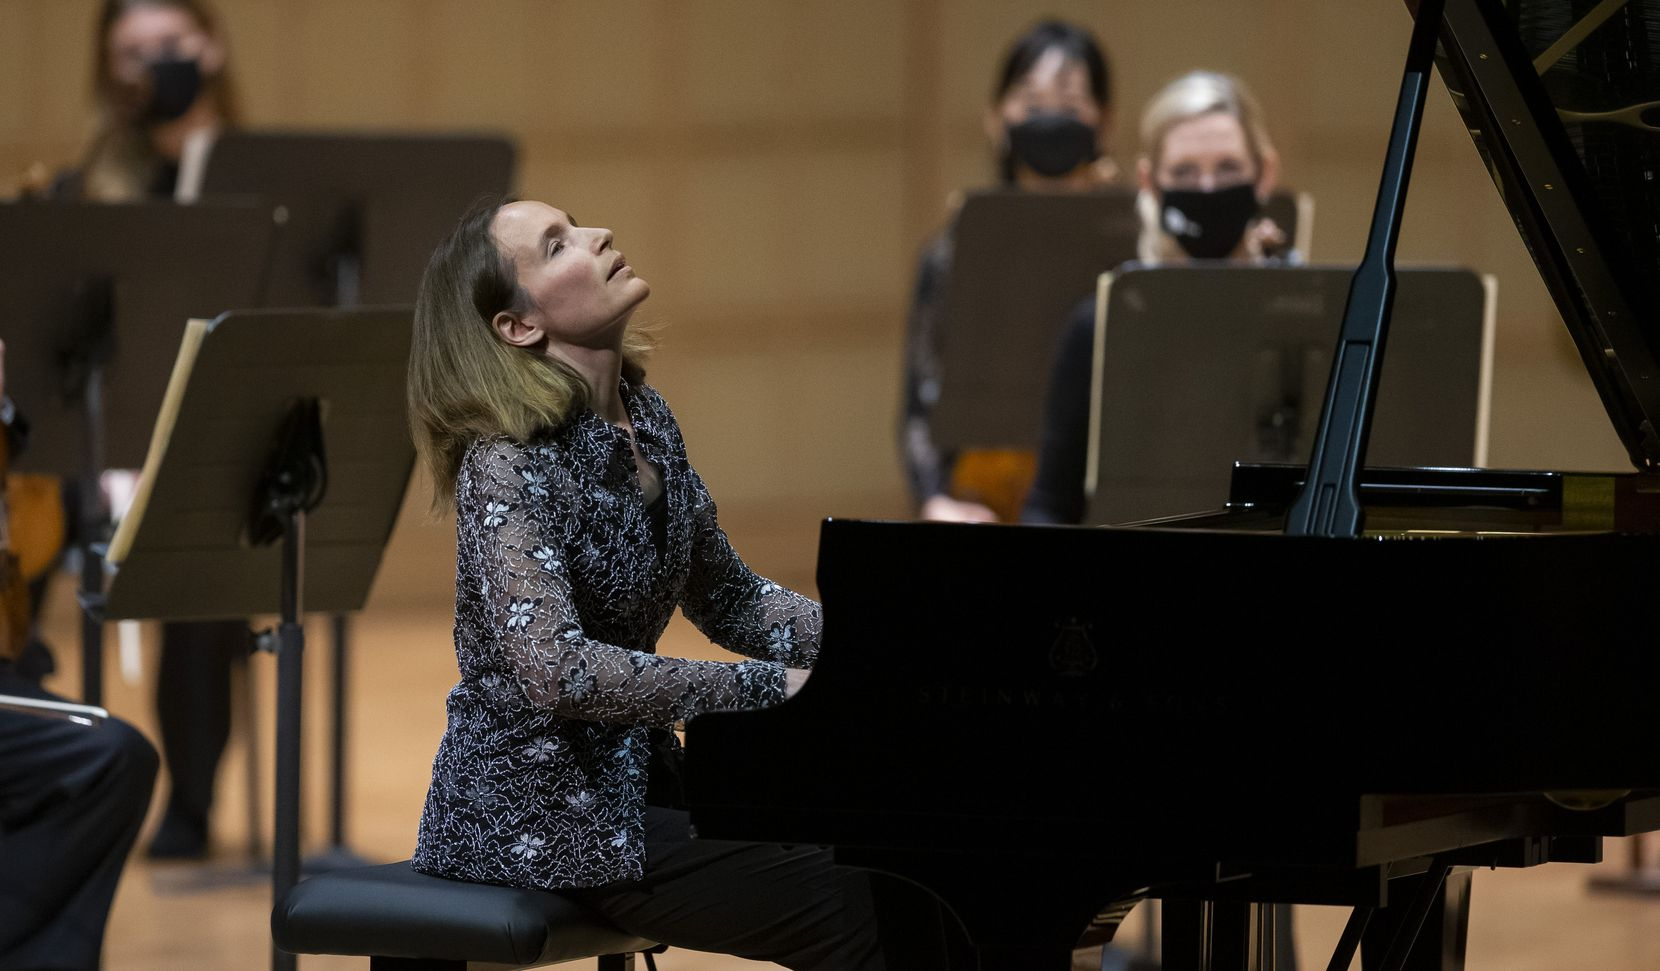 Pianist Helene Grimaud performs Mozart's Piano Concerto No. 20 in D minor with guest conductor Nicholas McGegan and the DSO on Jan. 14.